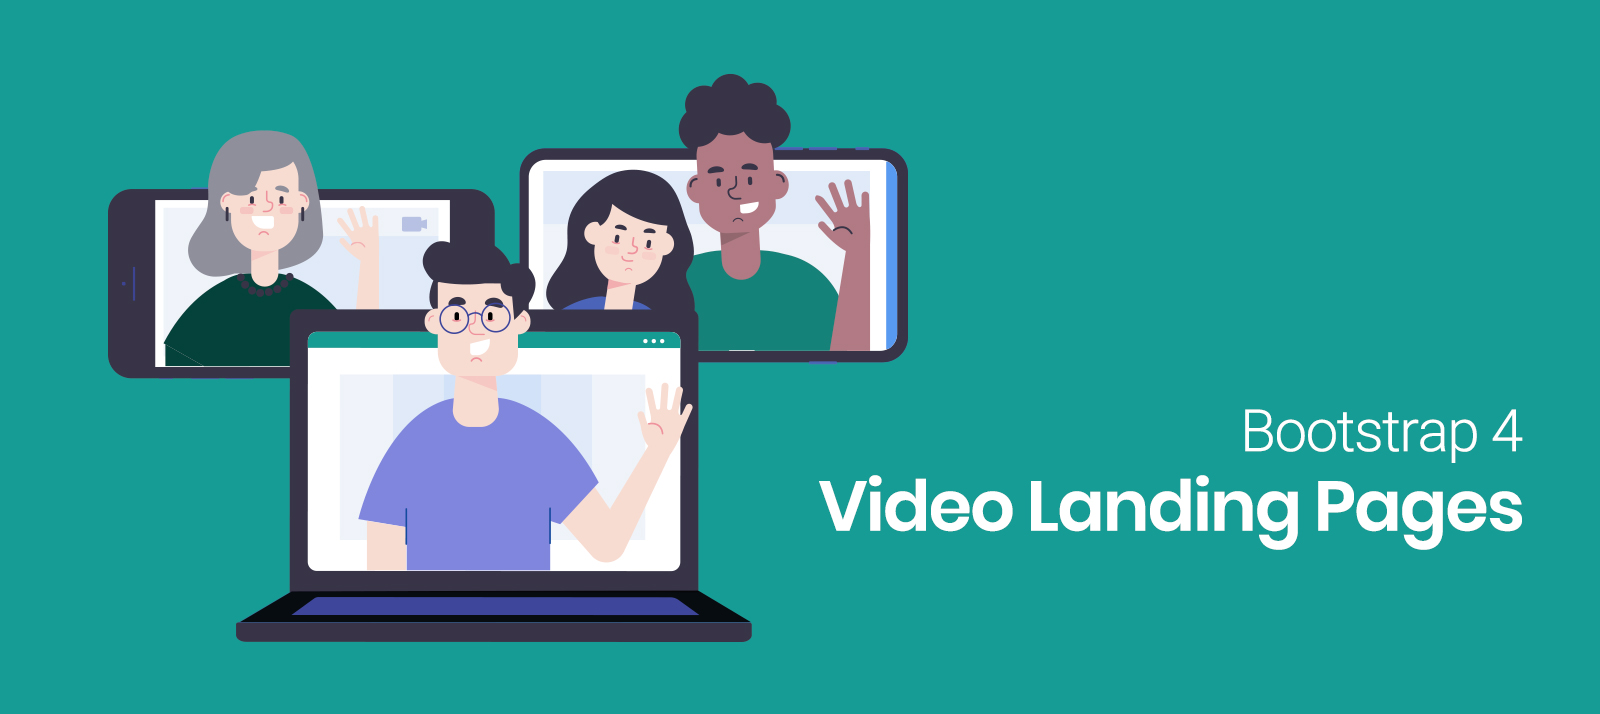 Bootstrap 4 Video Landing Pages Sure to Impress Users in 2020